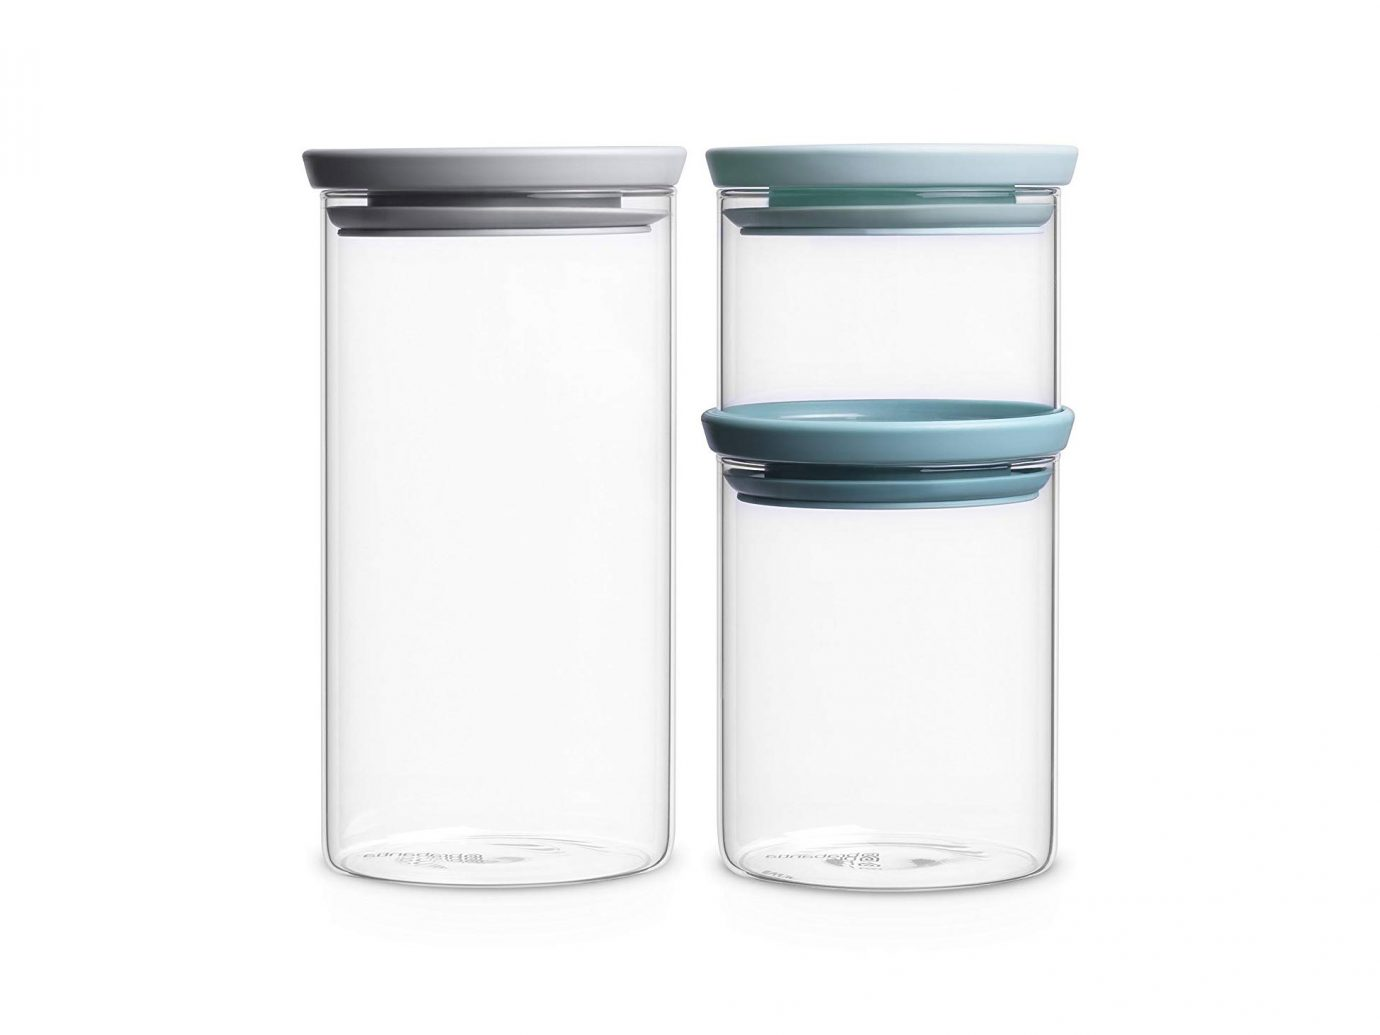 Brabantia Stackable Glass Food Storage Containers